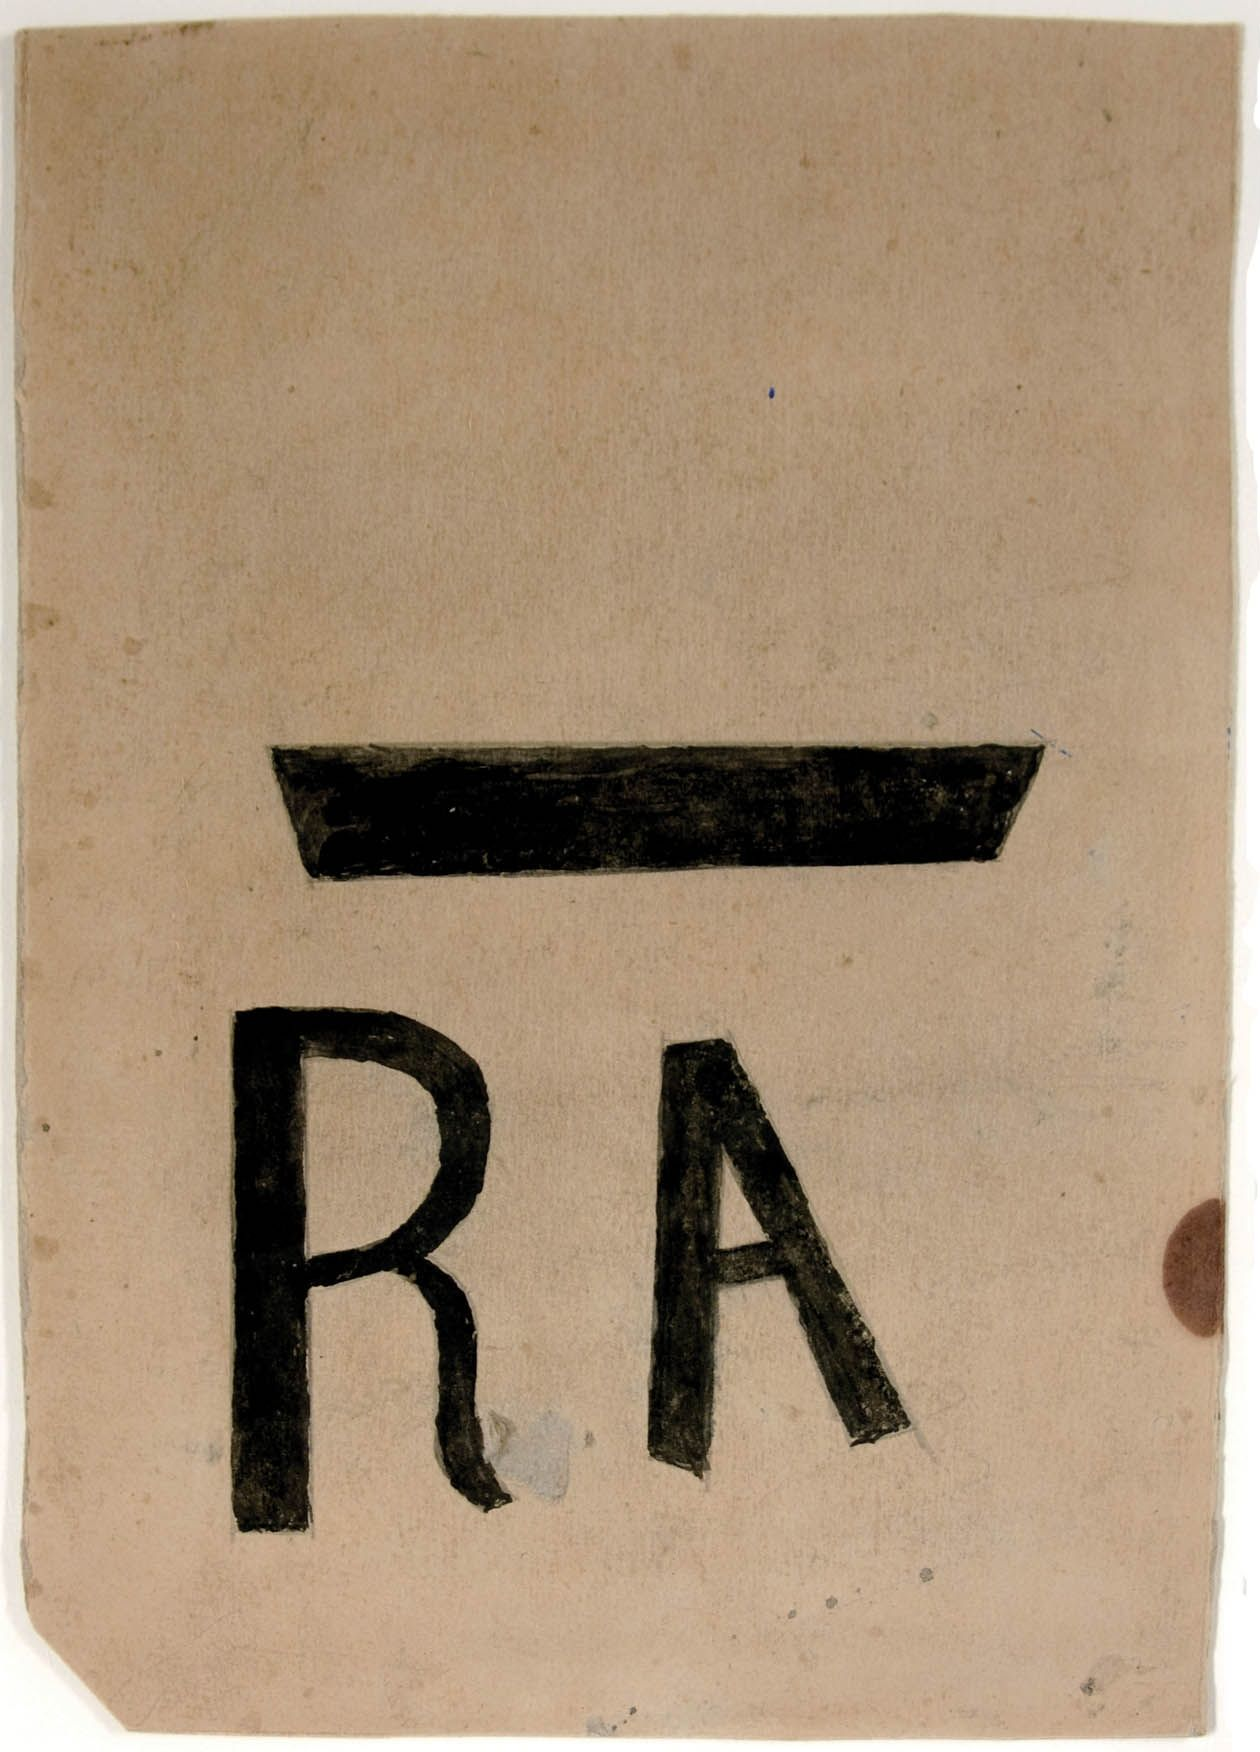 Image of RA Poster (Resettlement Administration)